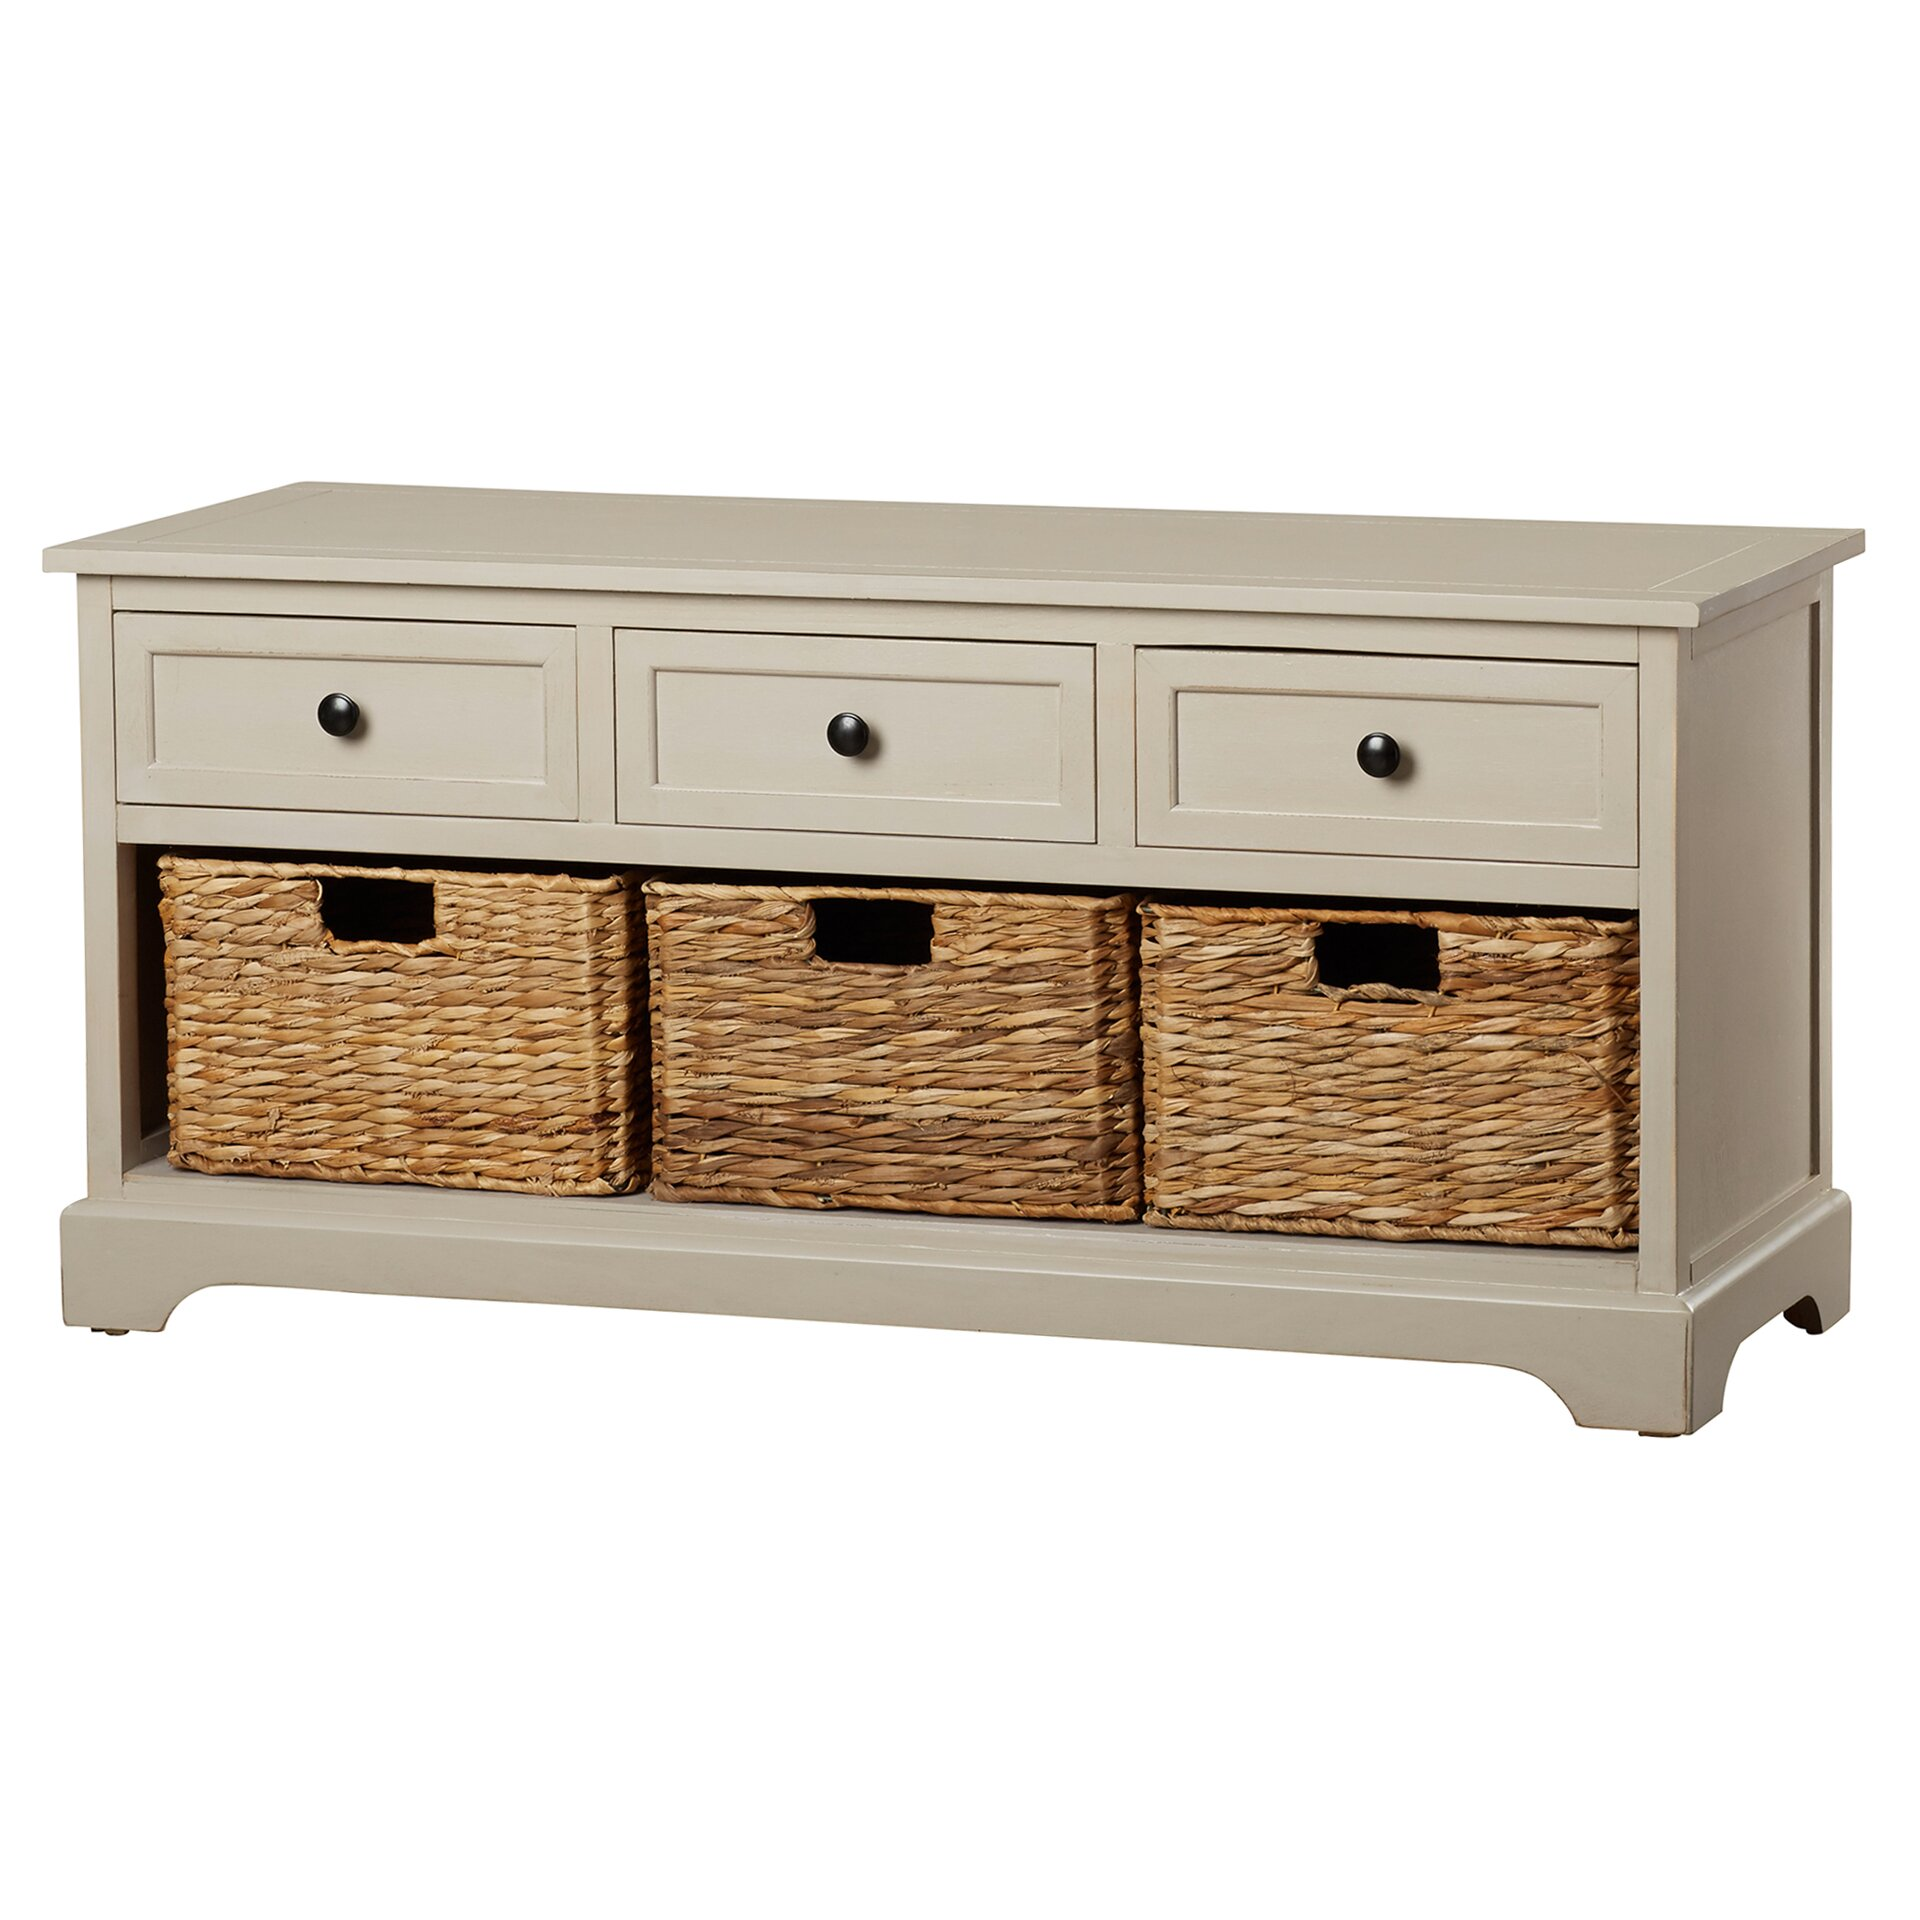 Beachcrest Home Mckinley 3 Drawer Storage Entryway Bench